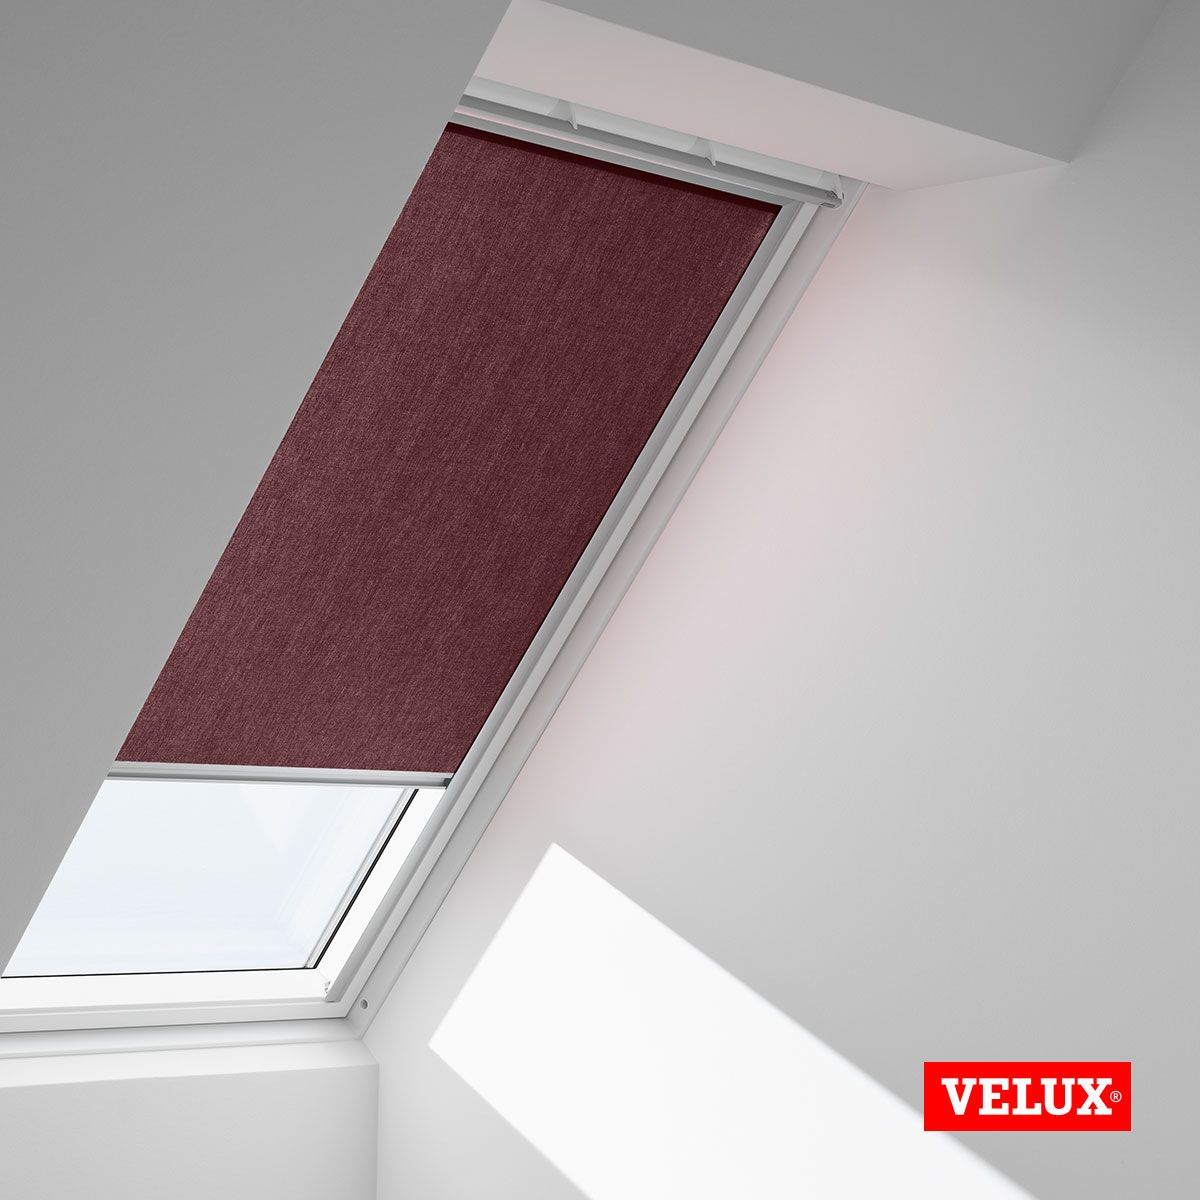 Genuine velux roller blinds made to match your velux roof for Velux window shades